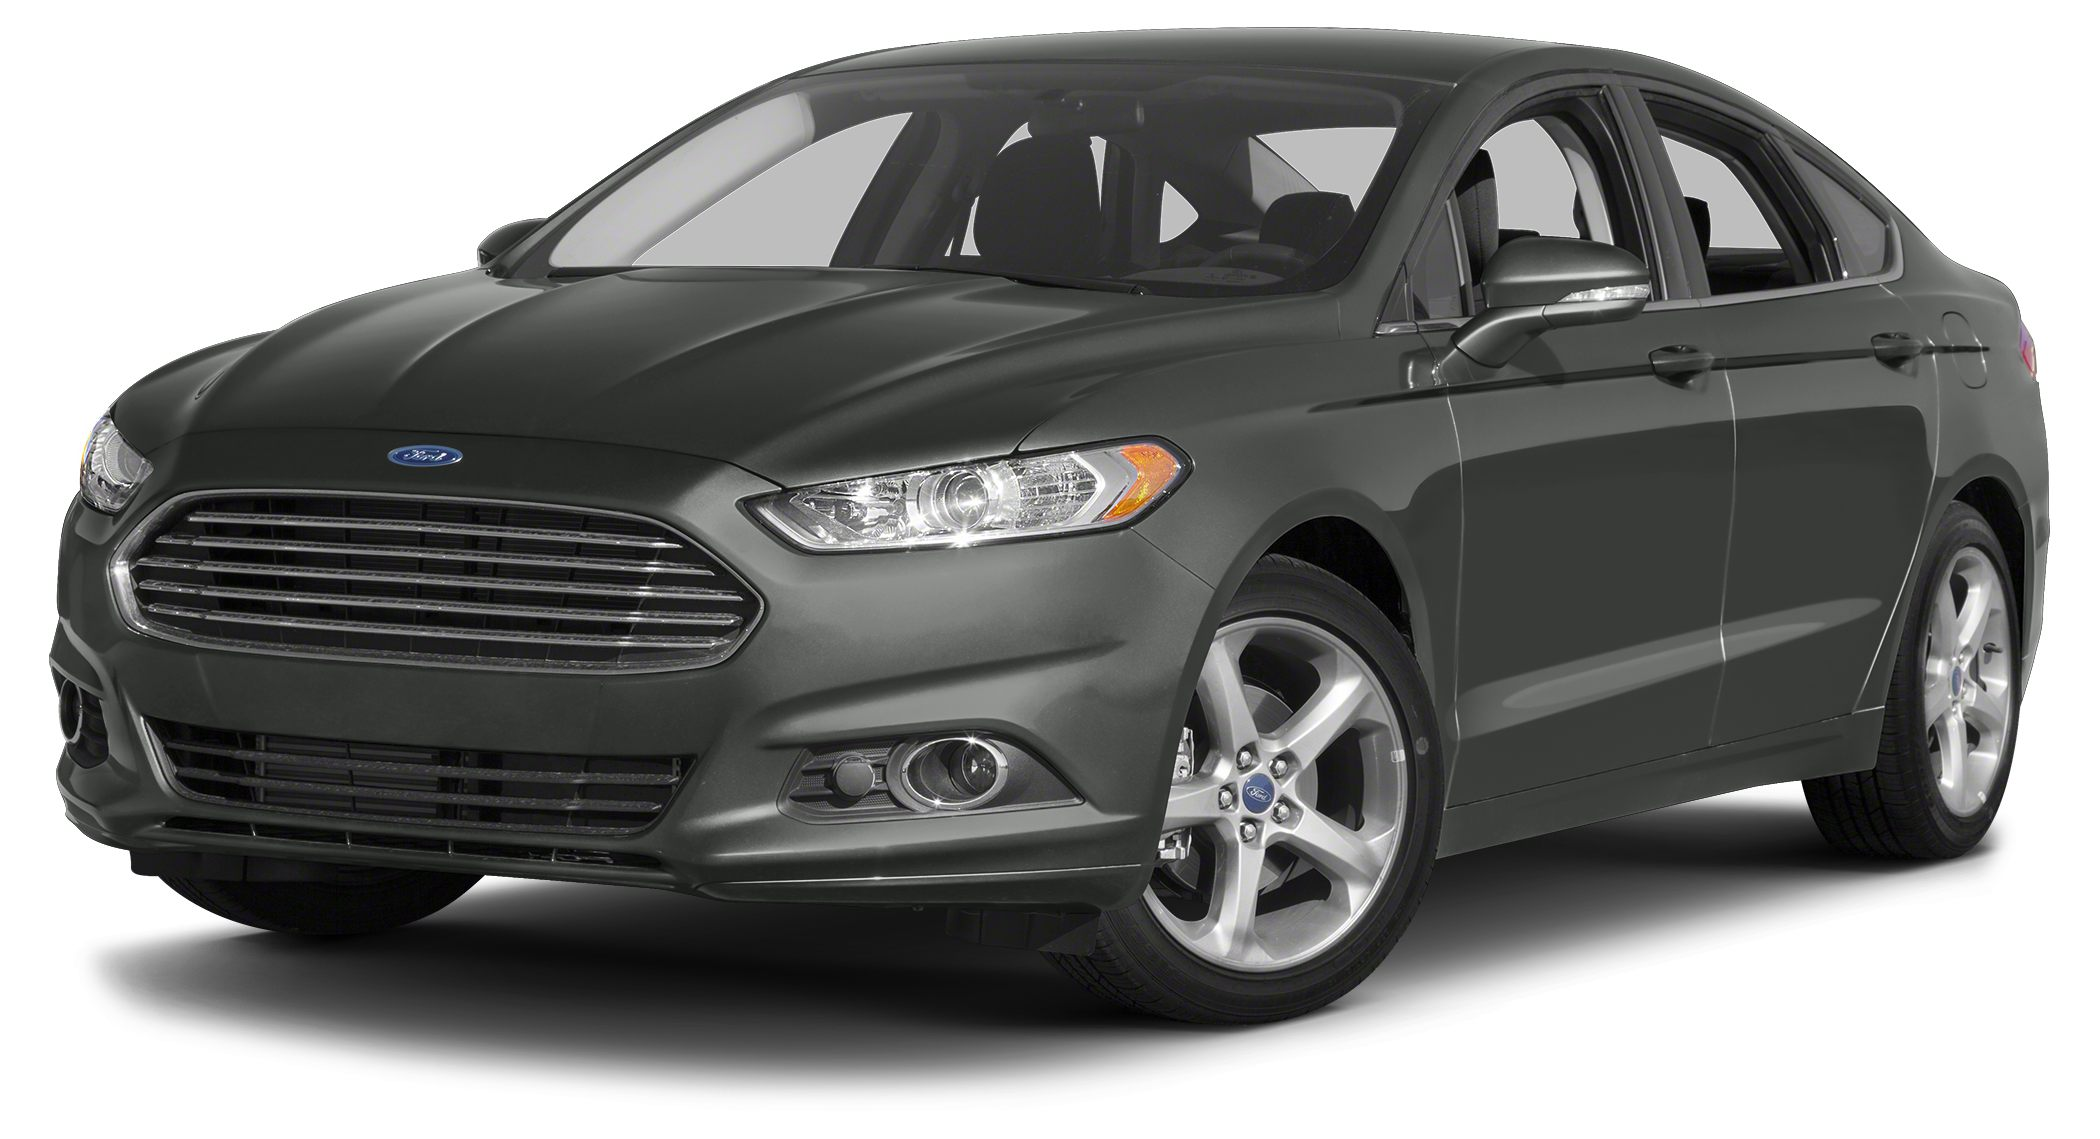 2016 Ford Fusion Titanium Introducing the 2016 Ford Fusion It delivers plenty of power and excell